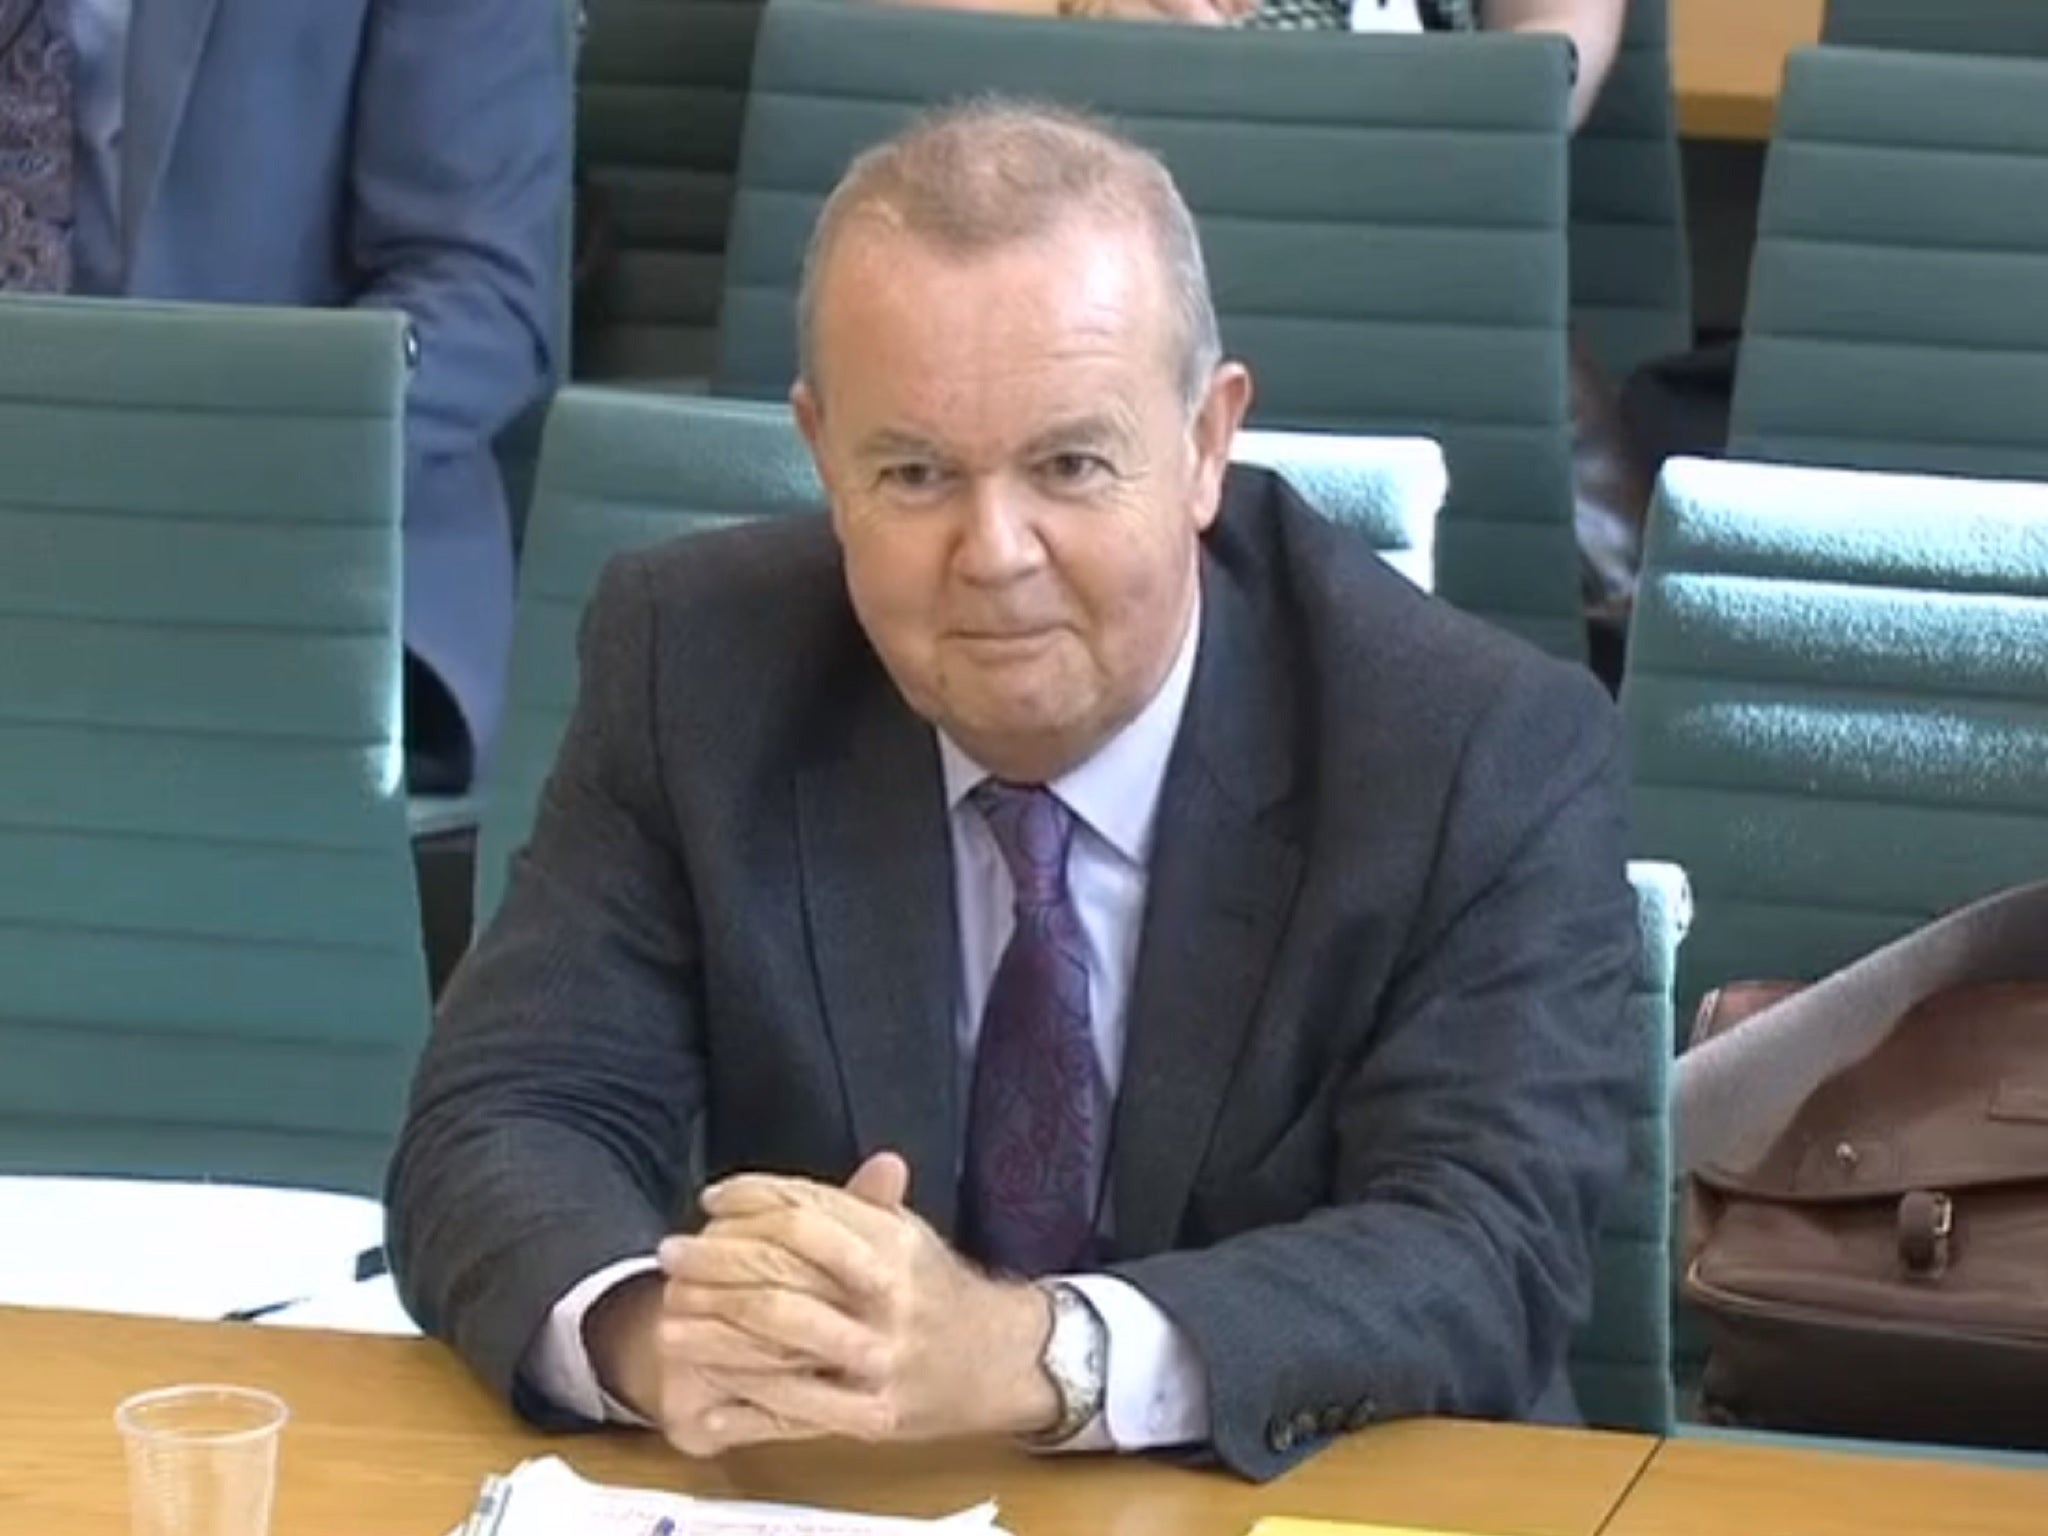 Michael Gove and Rupert Murdoch's relationship should be investigated, says Private Eye editor Ian Hislop